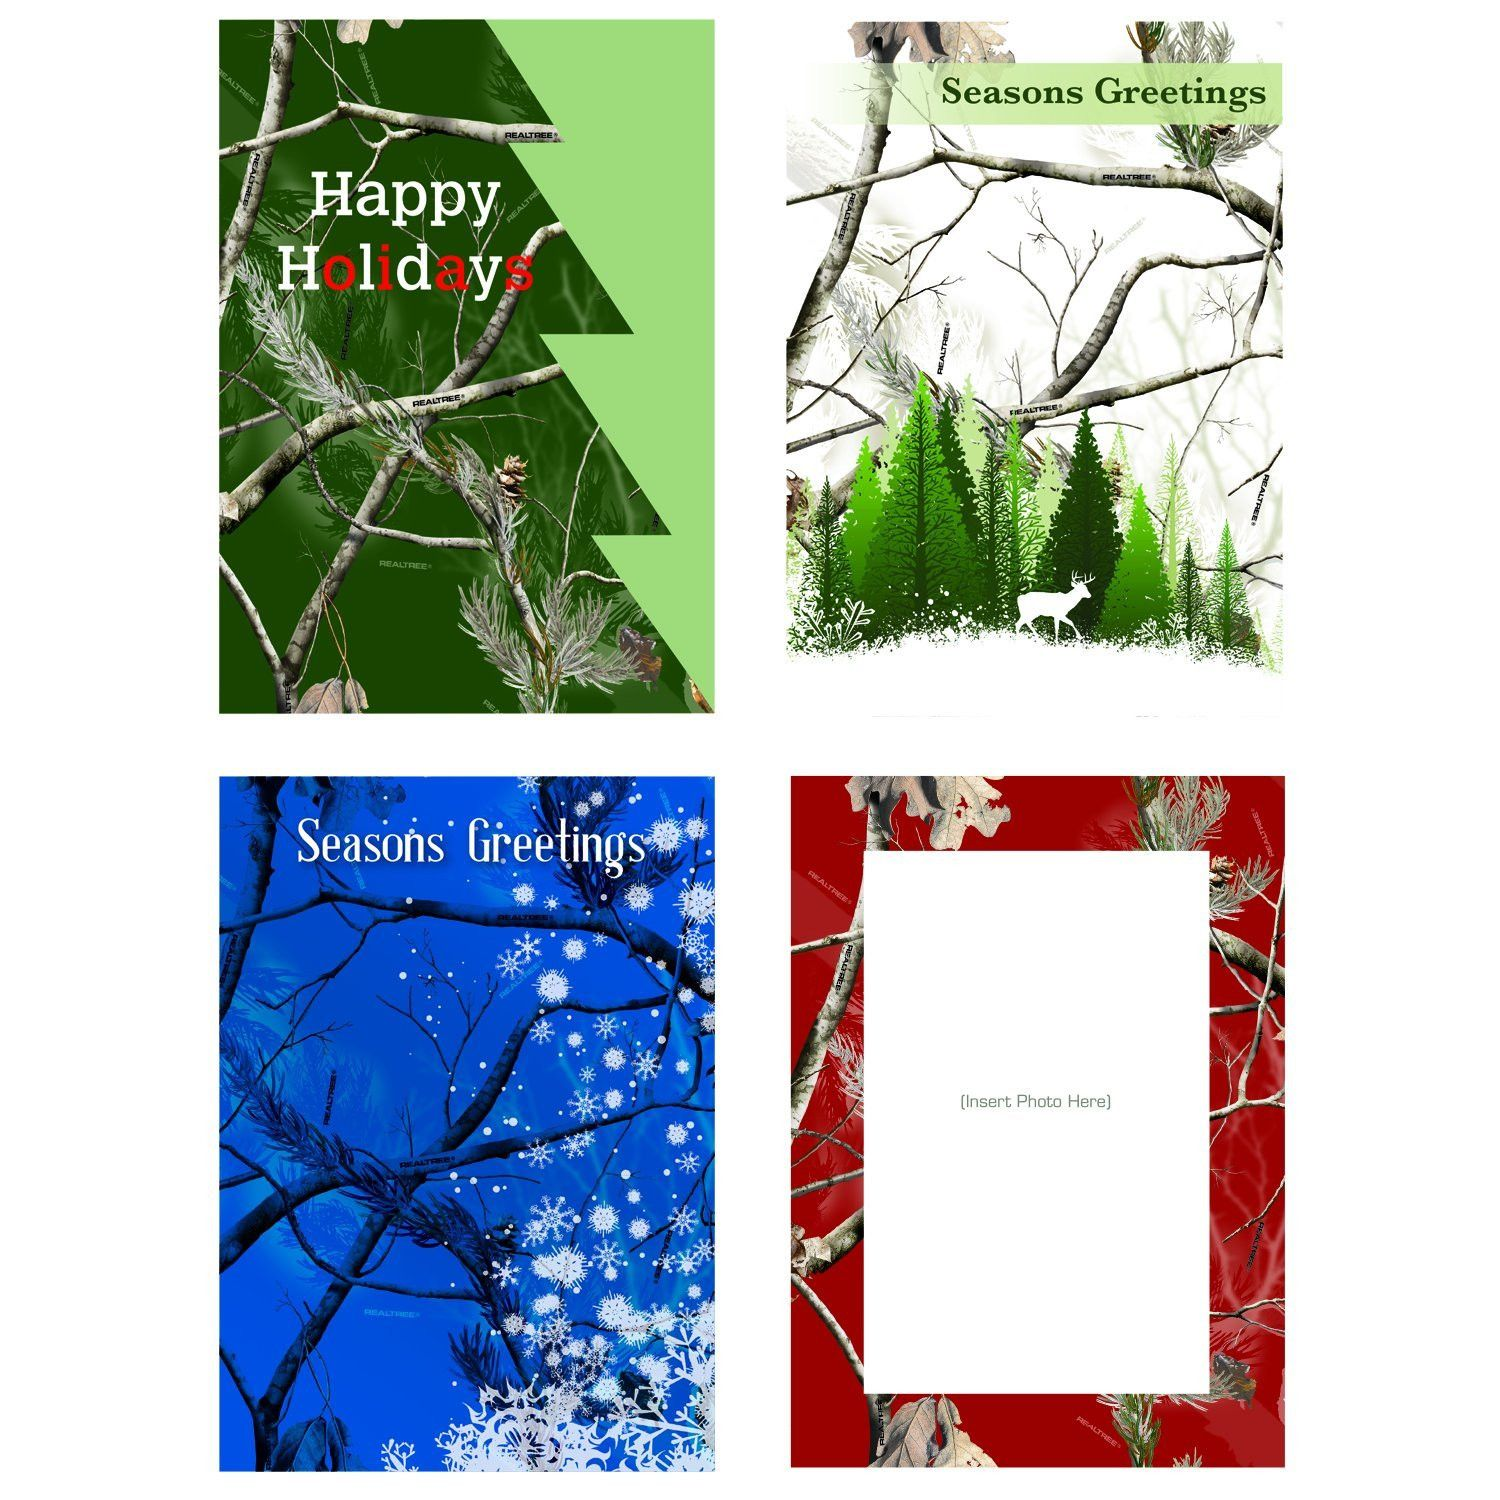 Realtree camo boxed holiday greeting cards 12 count count camo realtree camo boxed holiday greeting cards 12 count kristyandbryce Choice Image